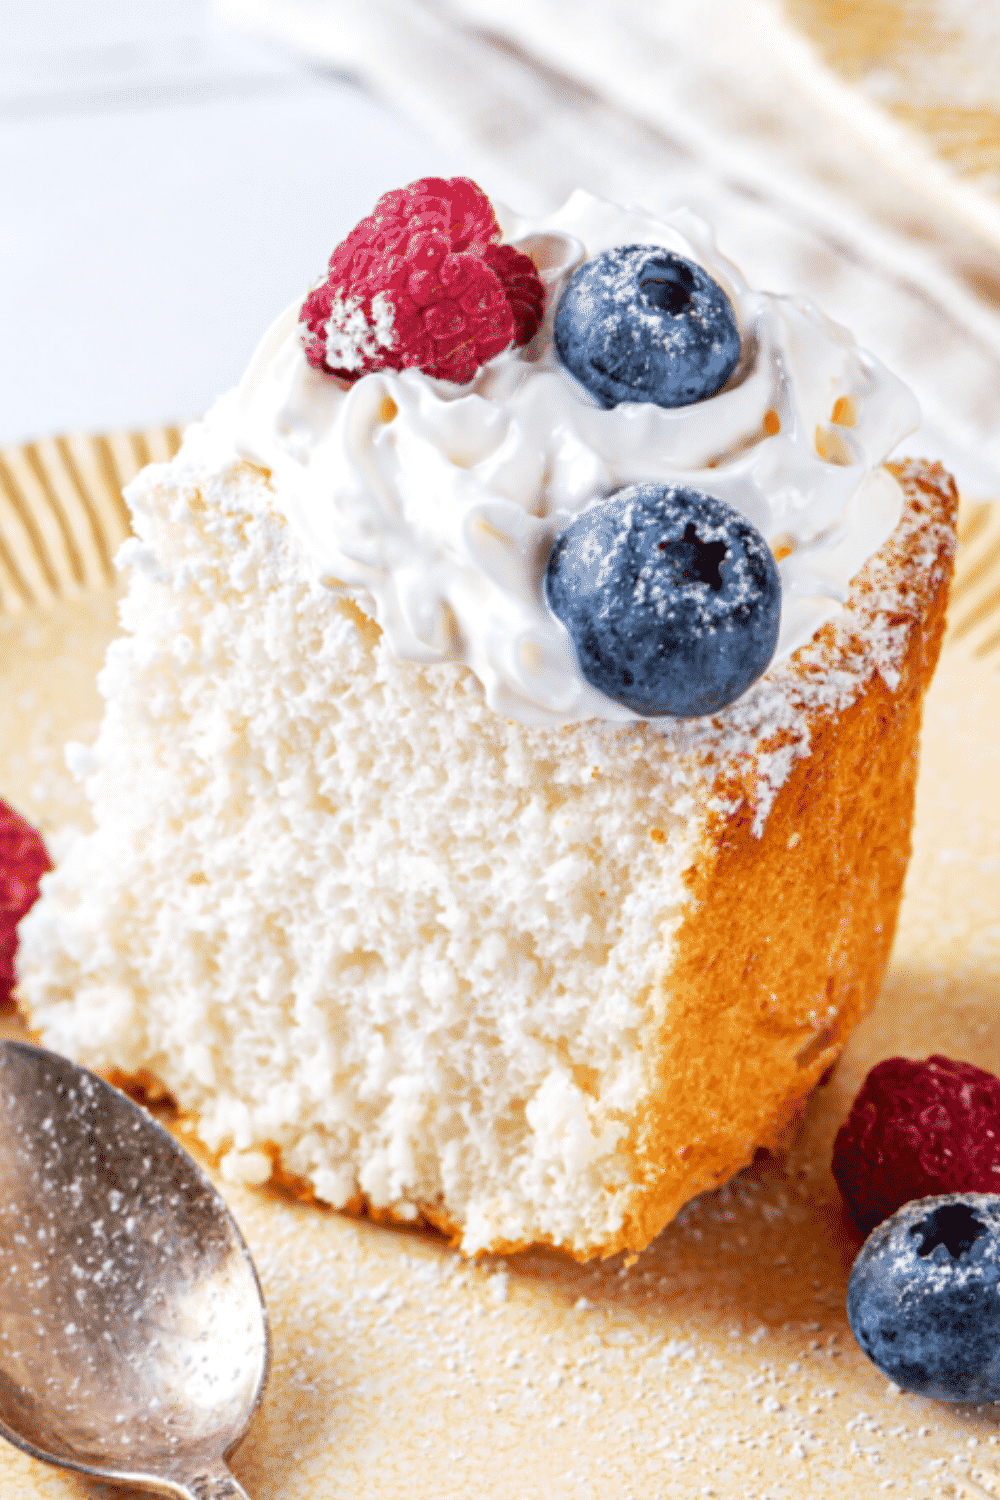 A piece of angel food cake on a plate. The piece of angel food cake has whipped cream and two blueberries and one raspberry on top.